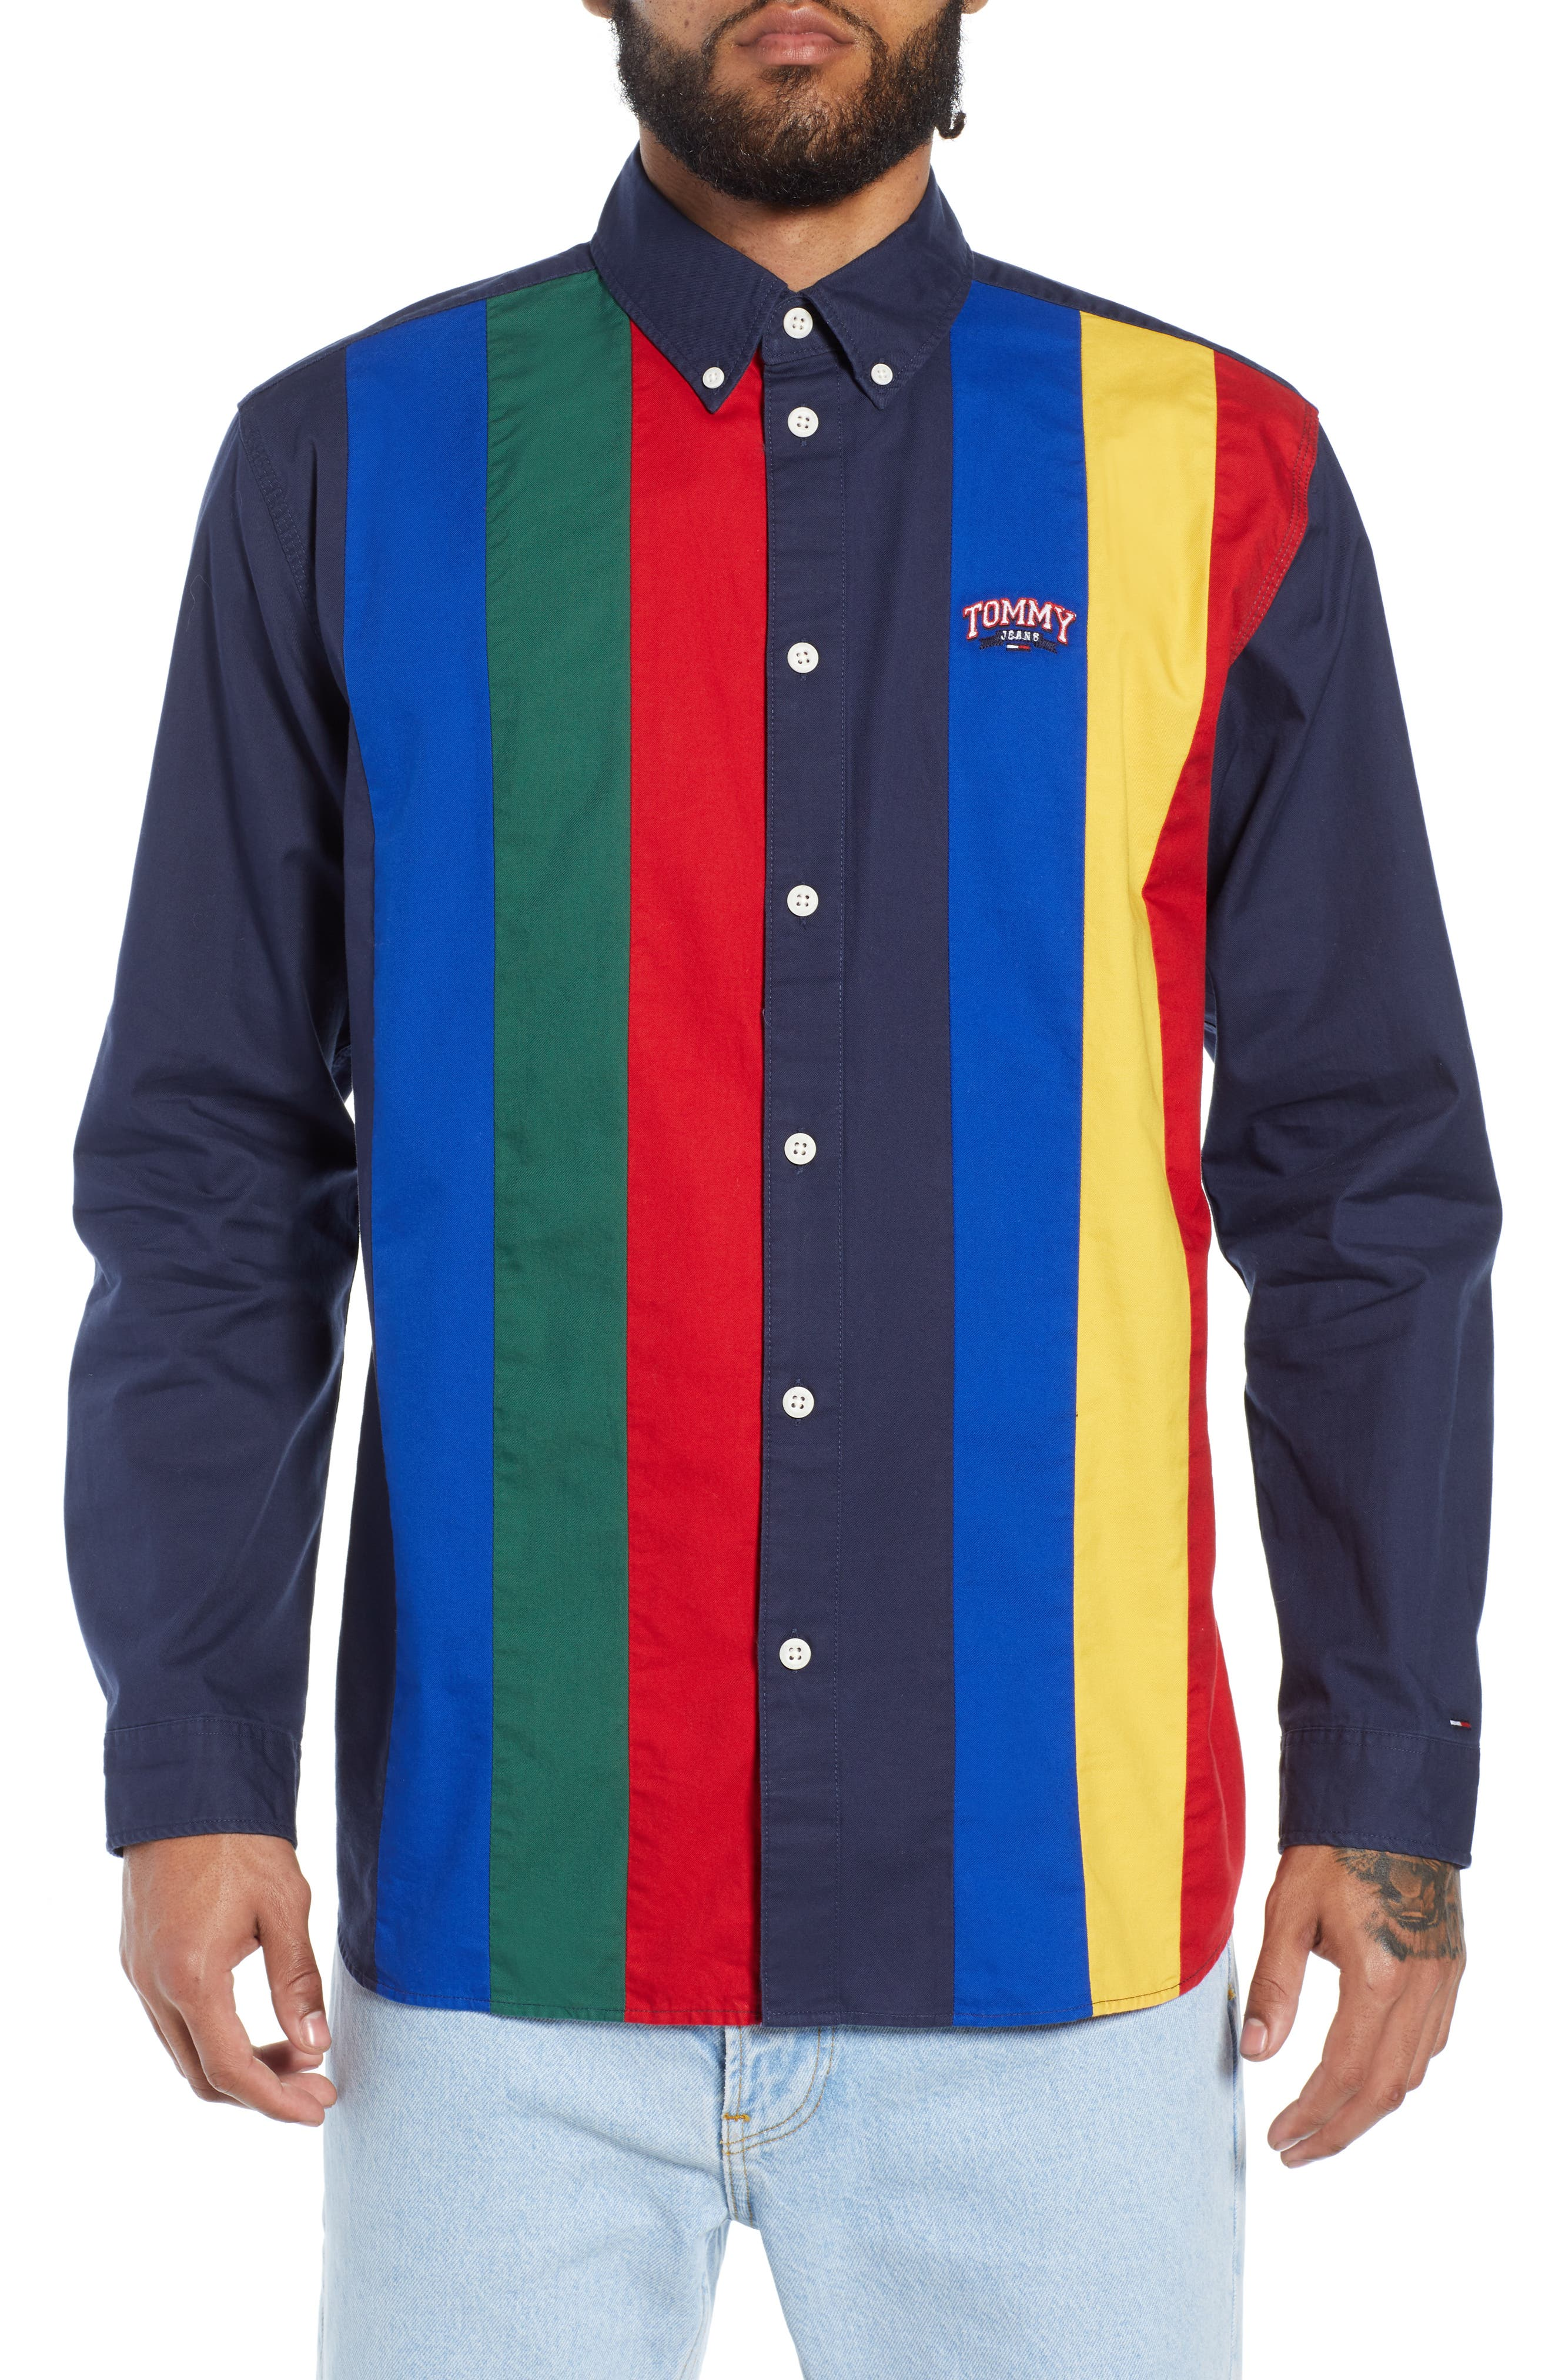 TOMMY JEANS Retro Striped Regular Fit Button-Down Shirt in Black Iris / Multi